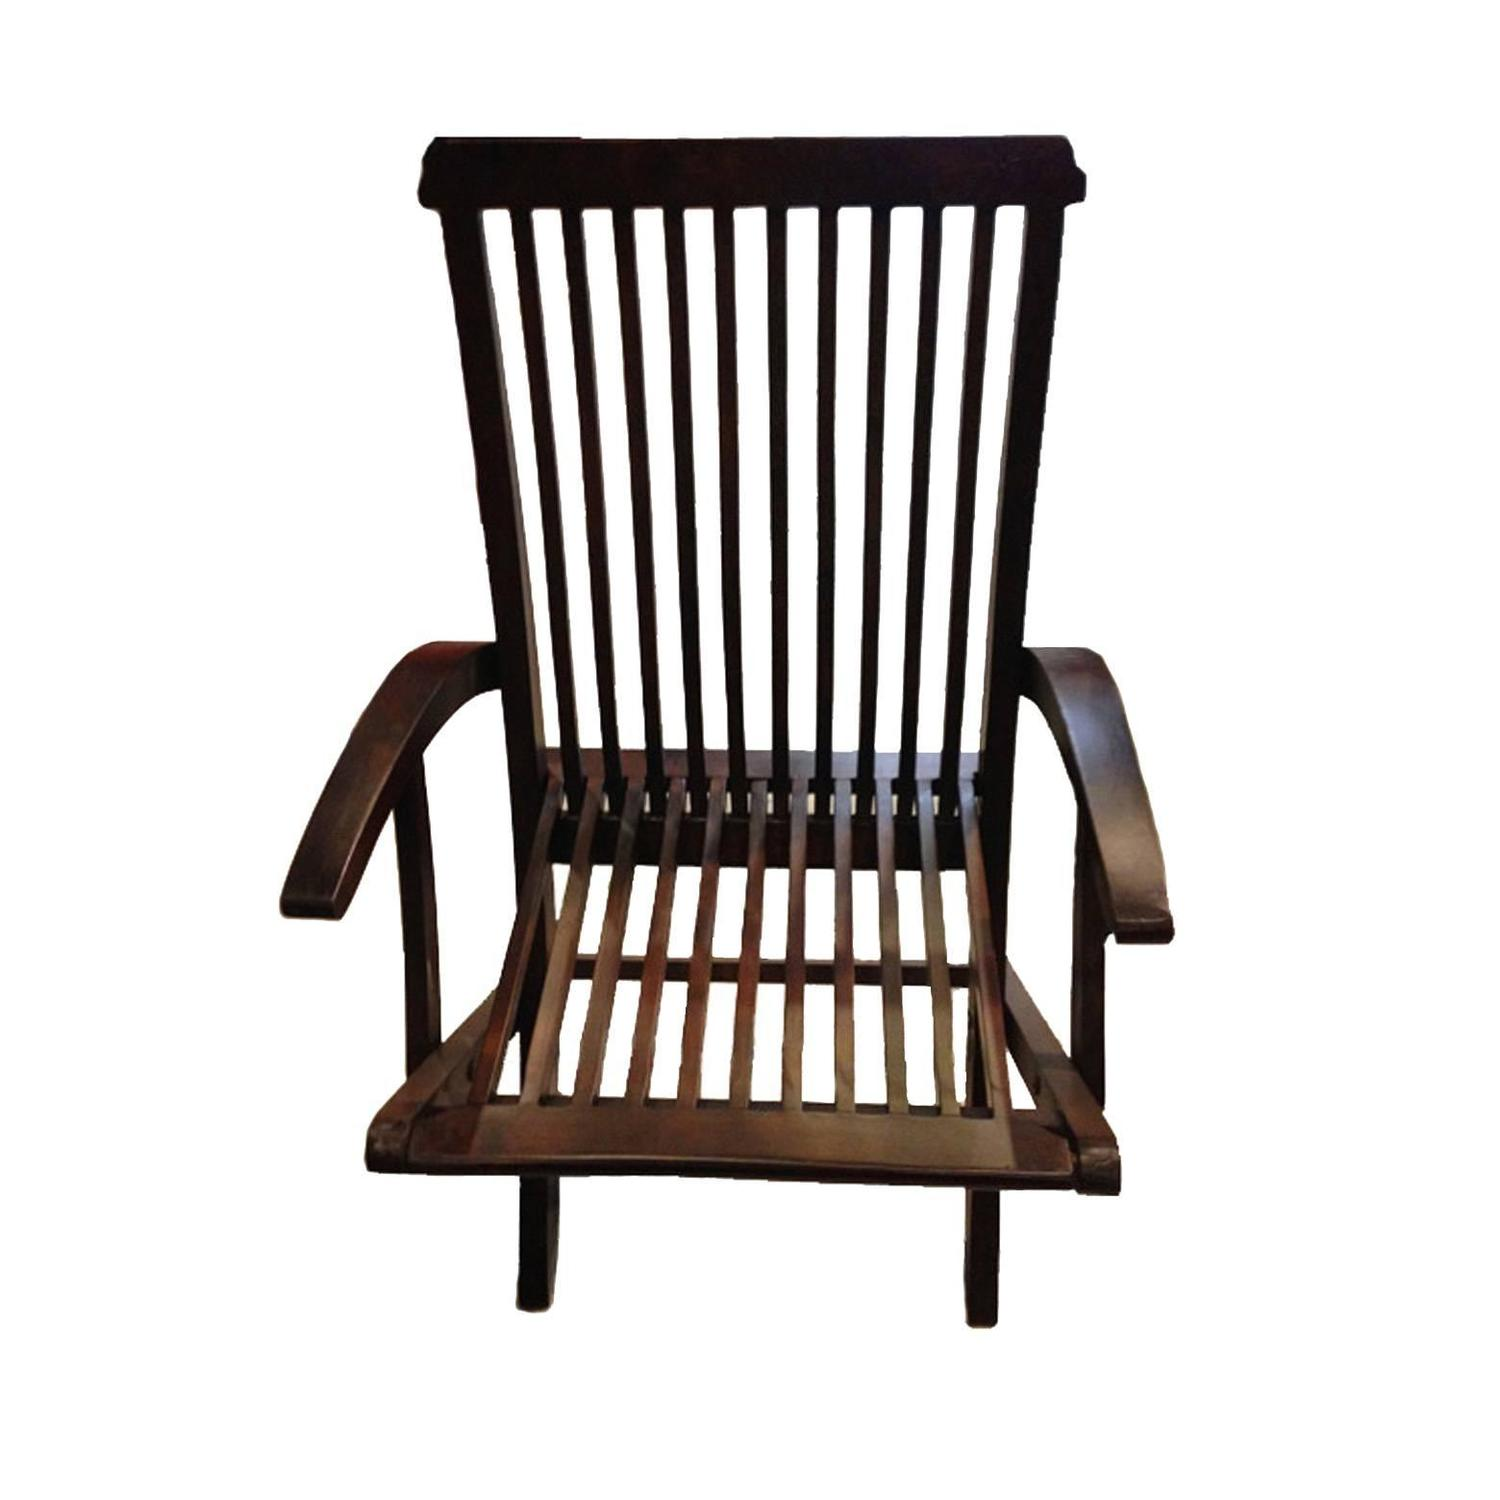 folding wood patio chairs type. Black Bedroom Furniture Sets. Home Design Ideas